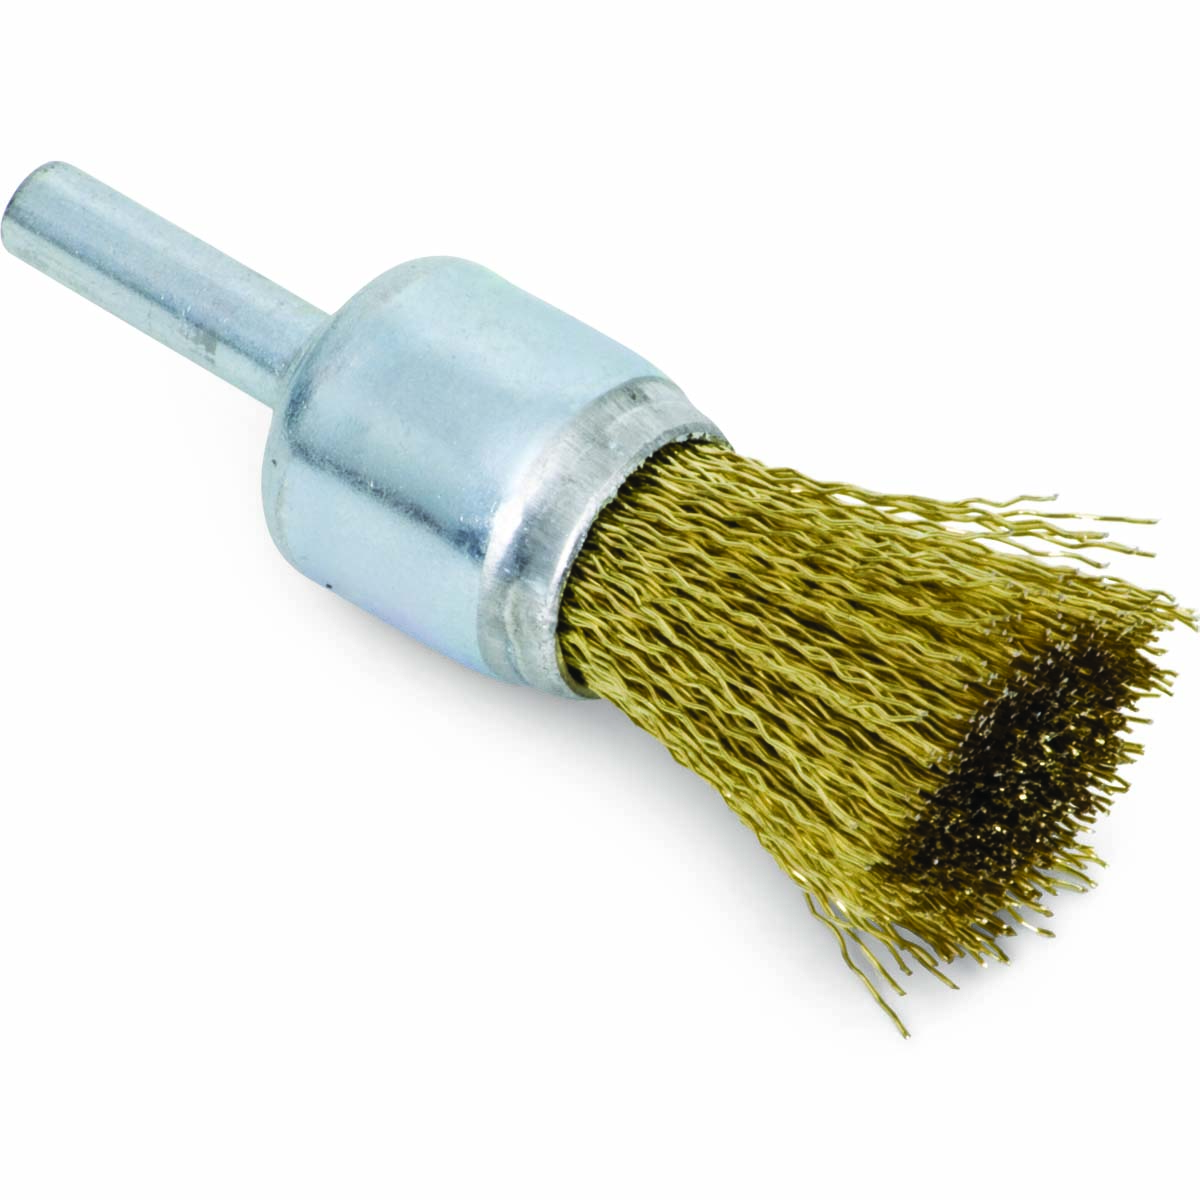 Quot solid end crimped wire brush kimball midwest